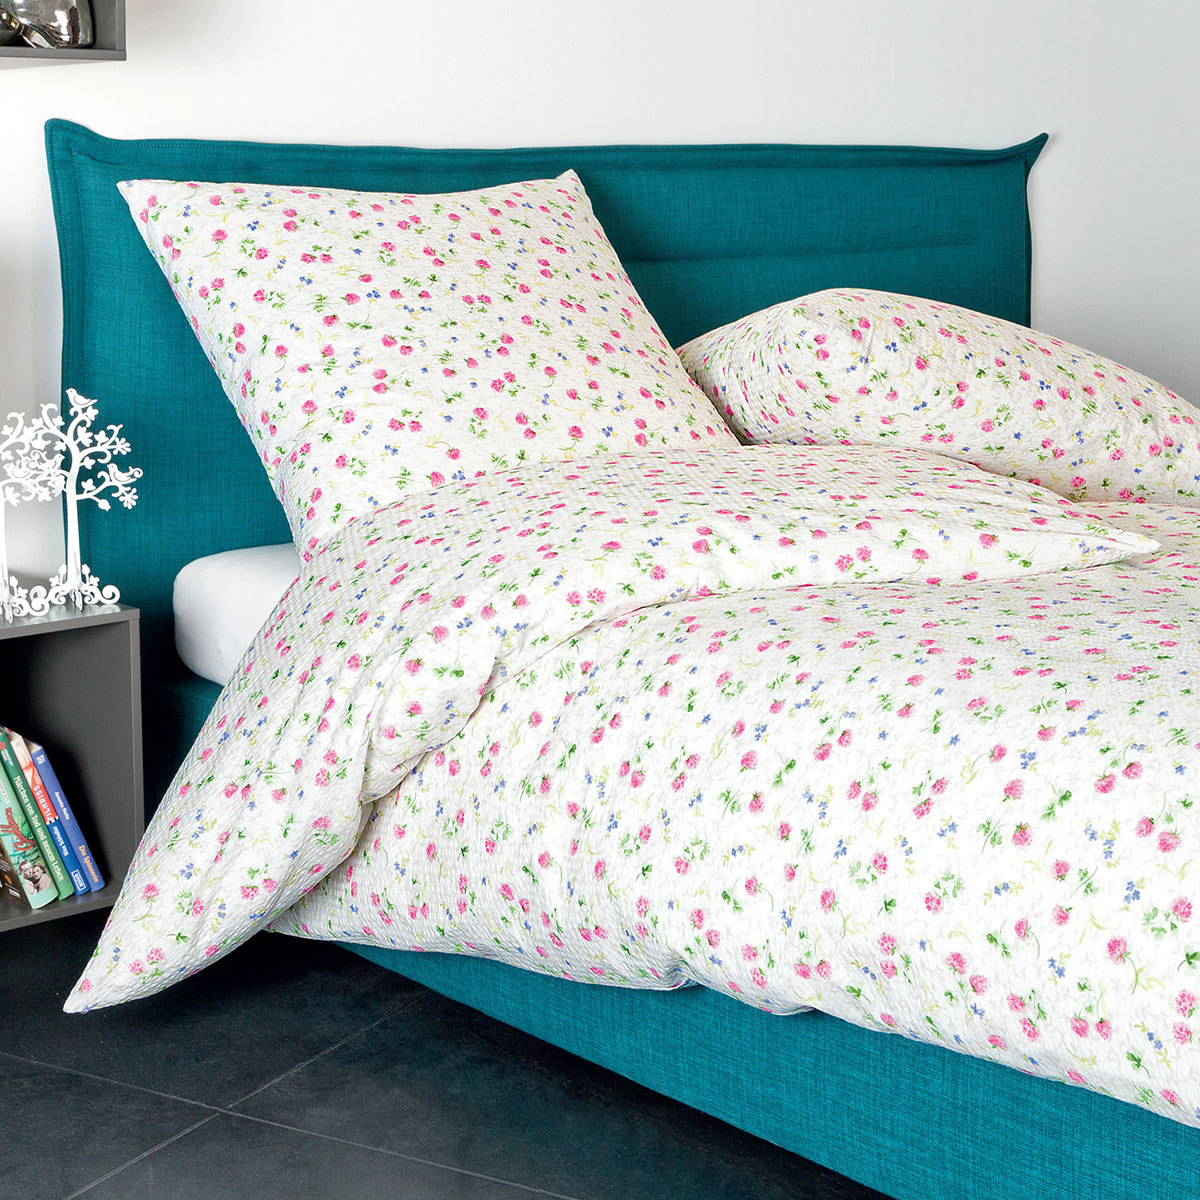 janine seersucker bettw sche tango 20031 01 fuchsienrosa fliederblau g nstig online kaufen bei. Black Bedroom Furniture Sets. Home Design Ideas